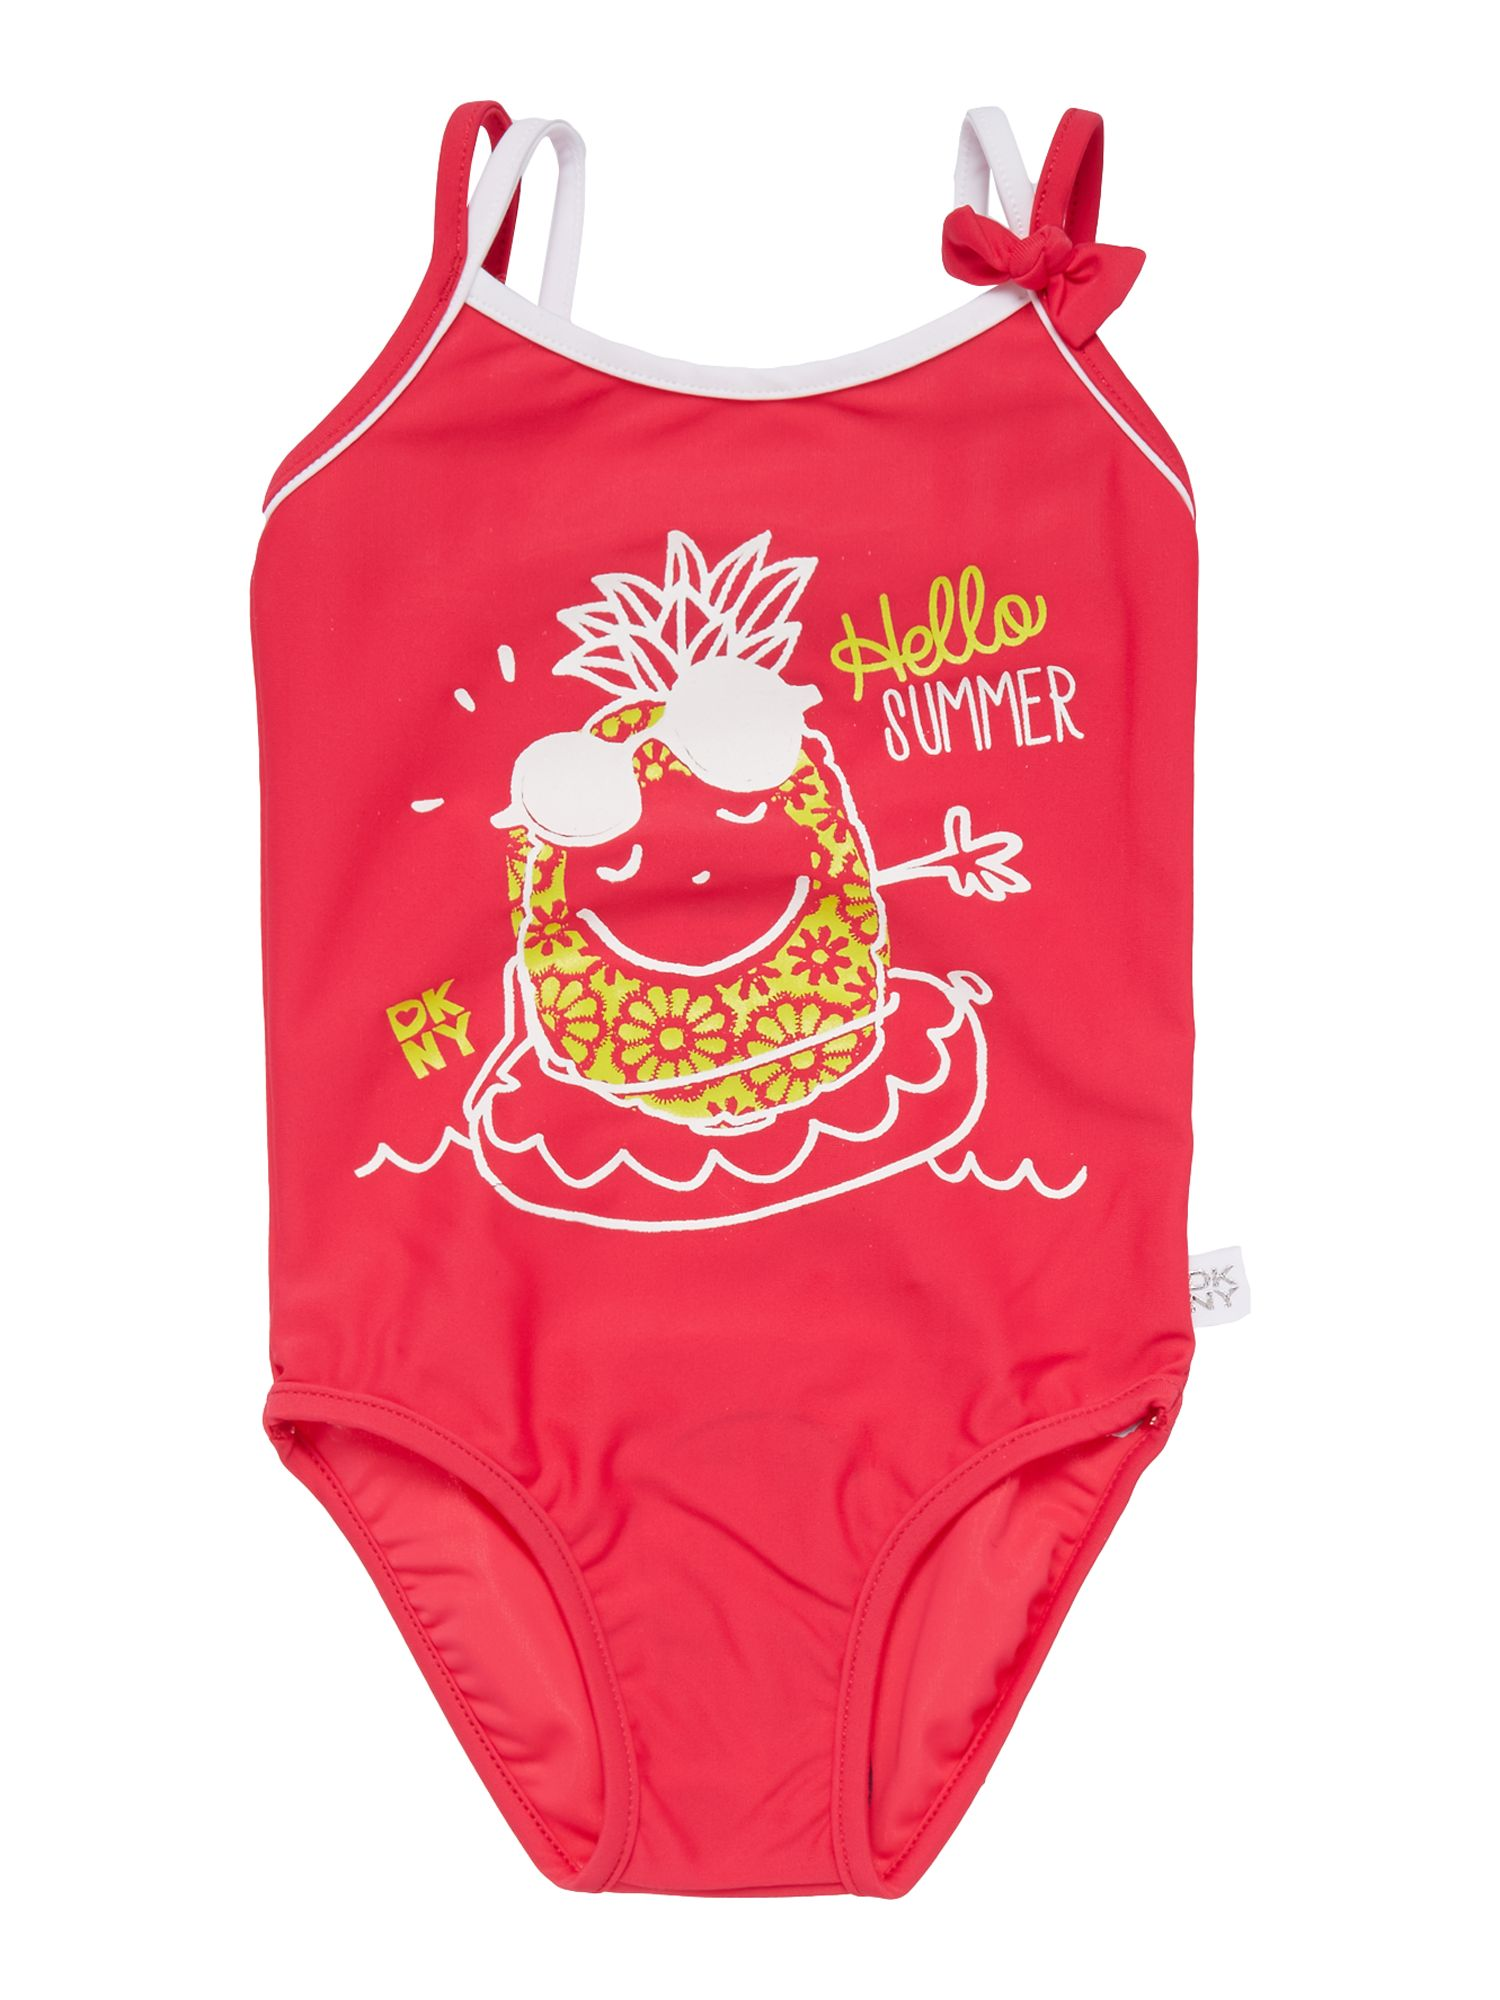 DKNY Baby girls swimming costume